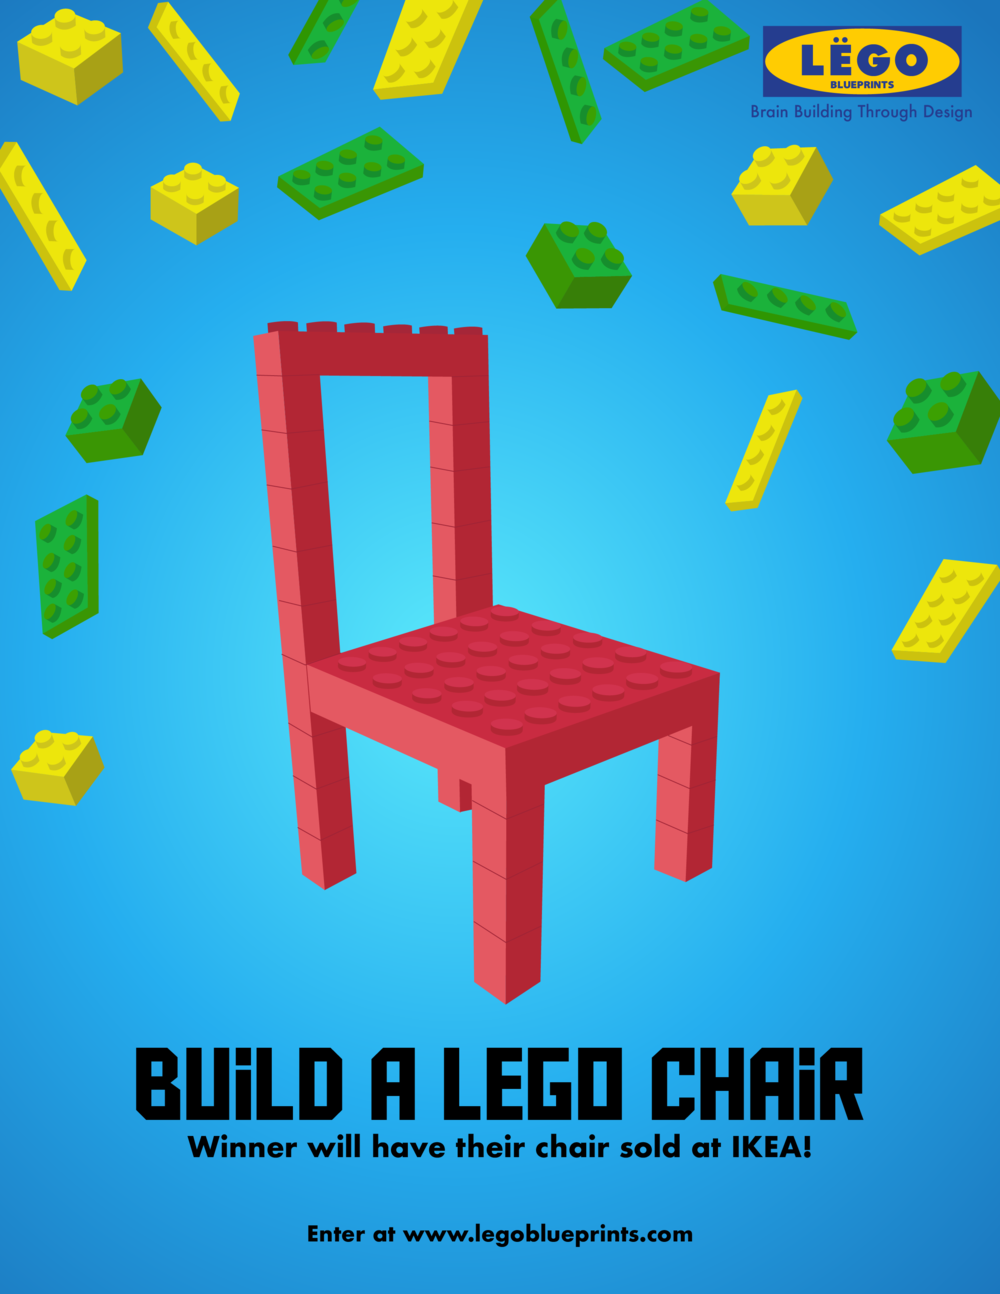 lego blueprints competition posters-01.png